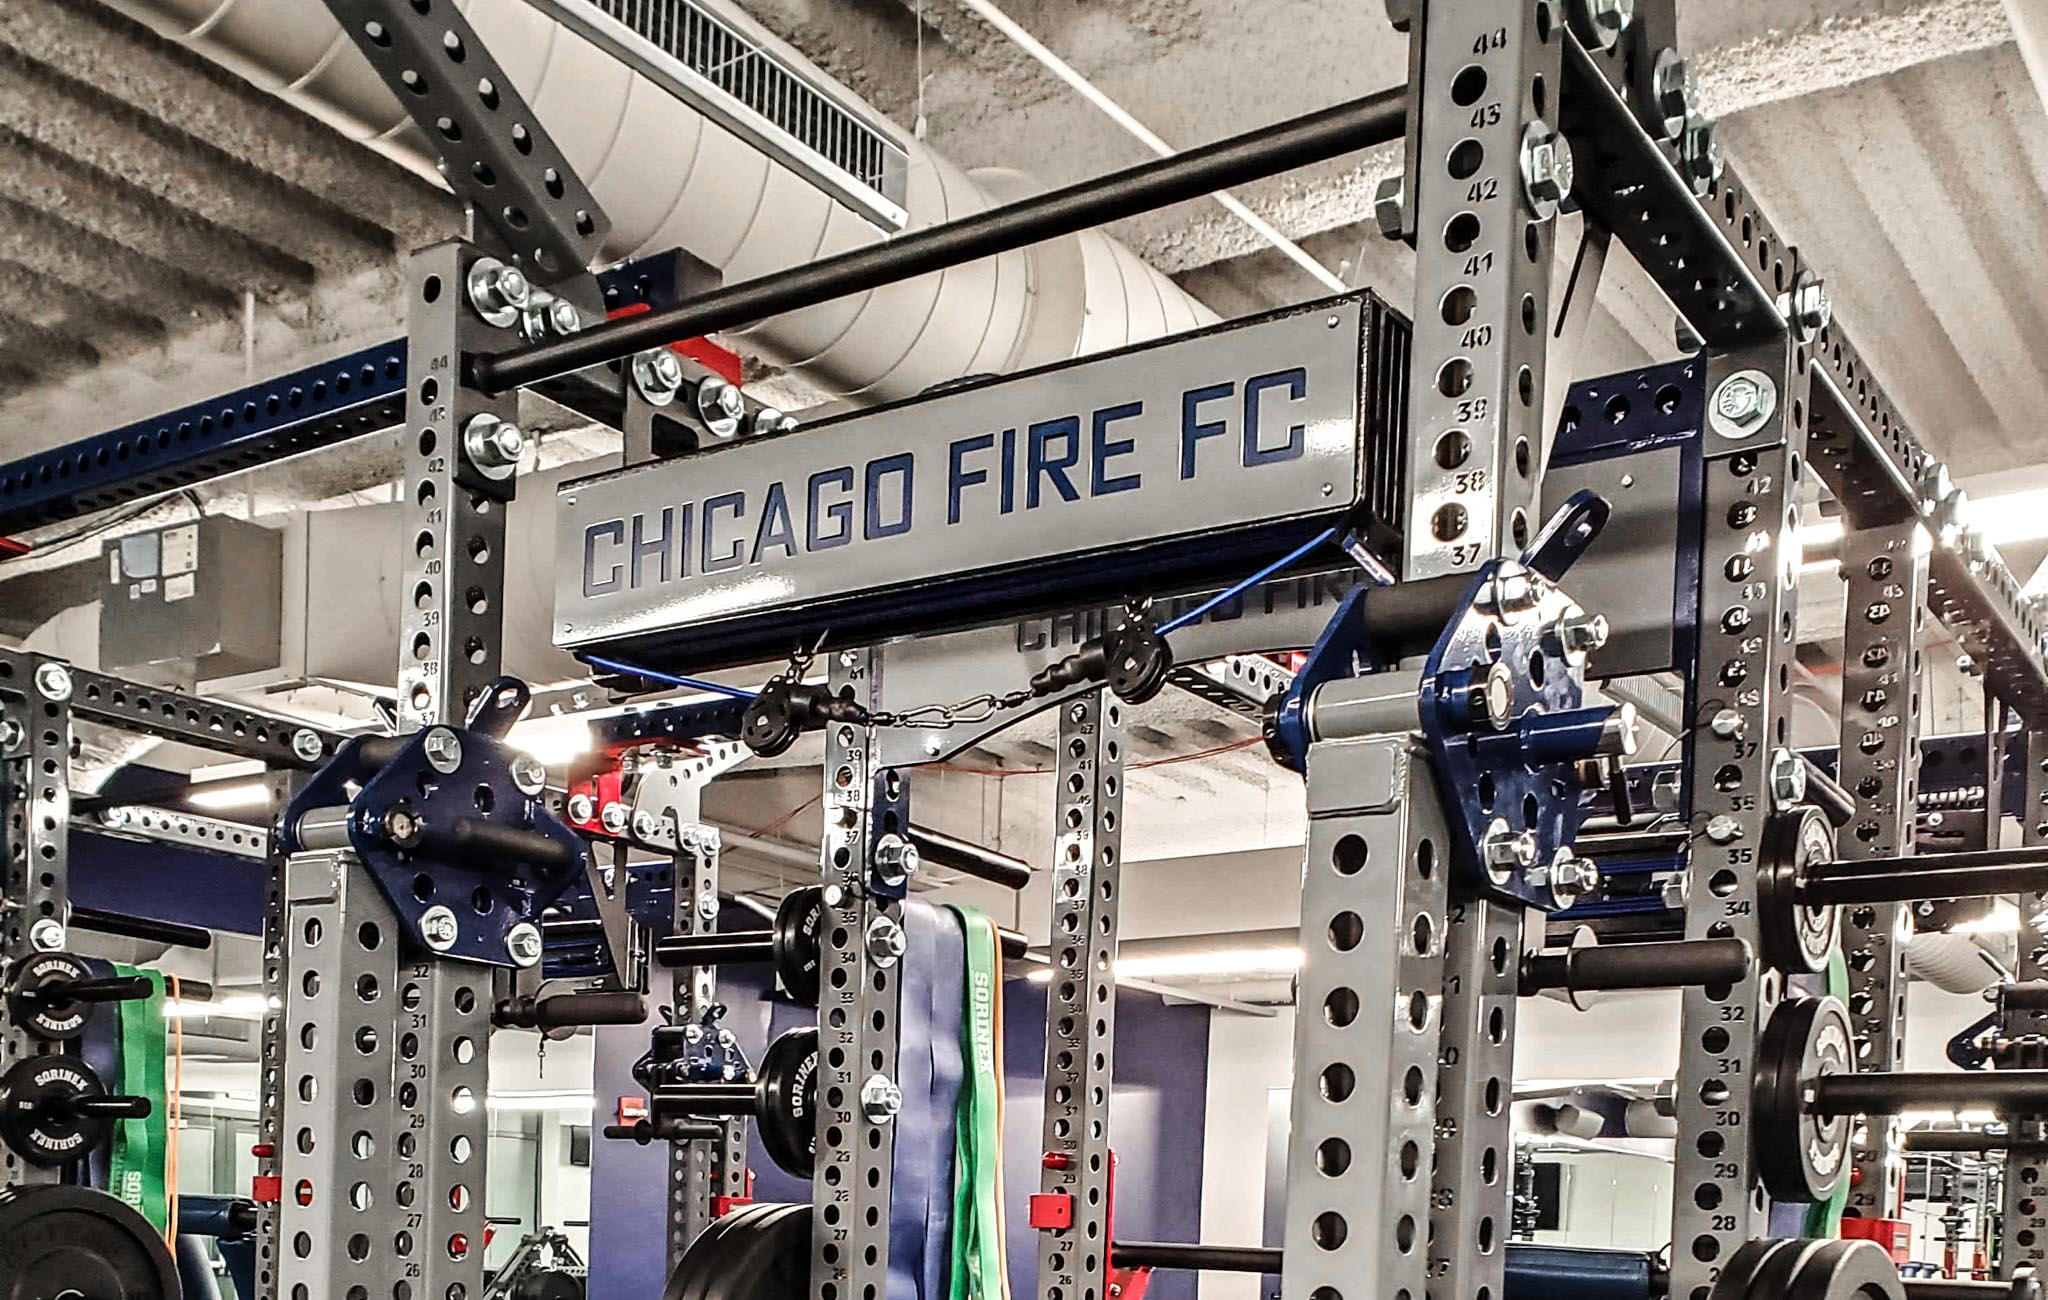 Chicago Fire Soccer strength and conditioning